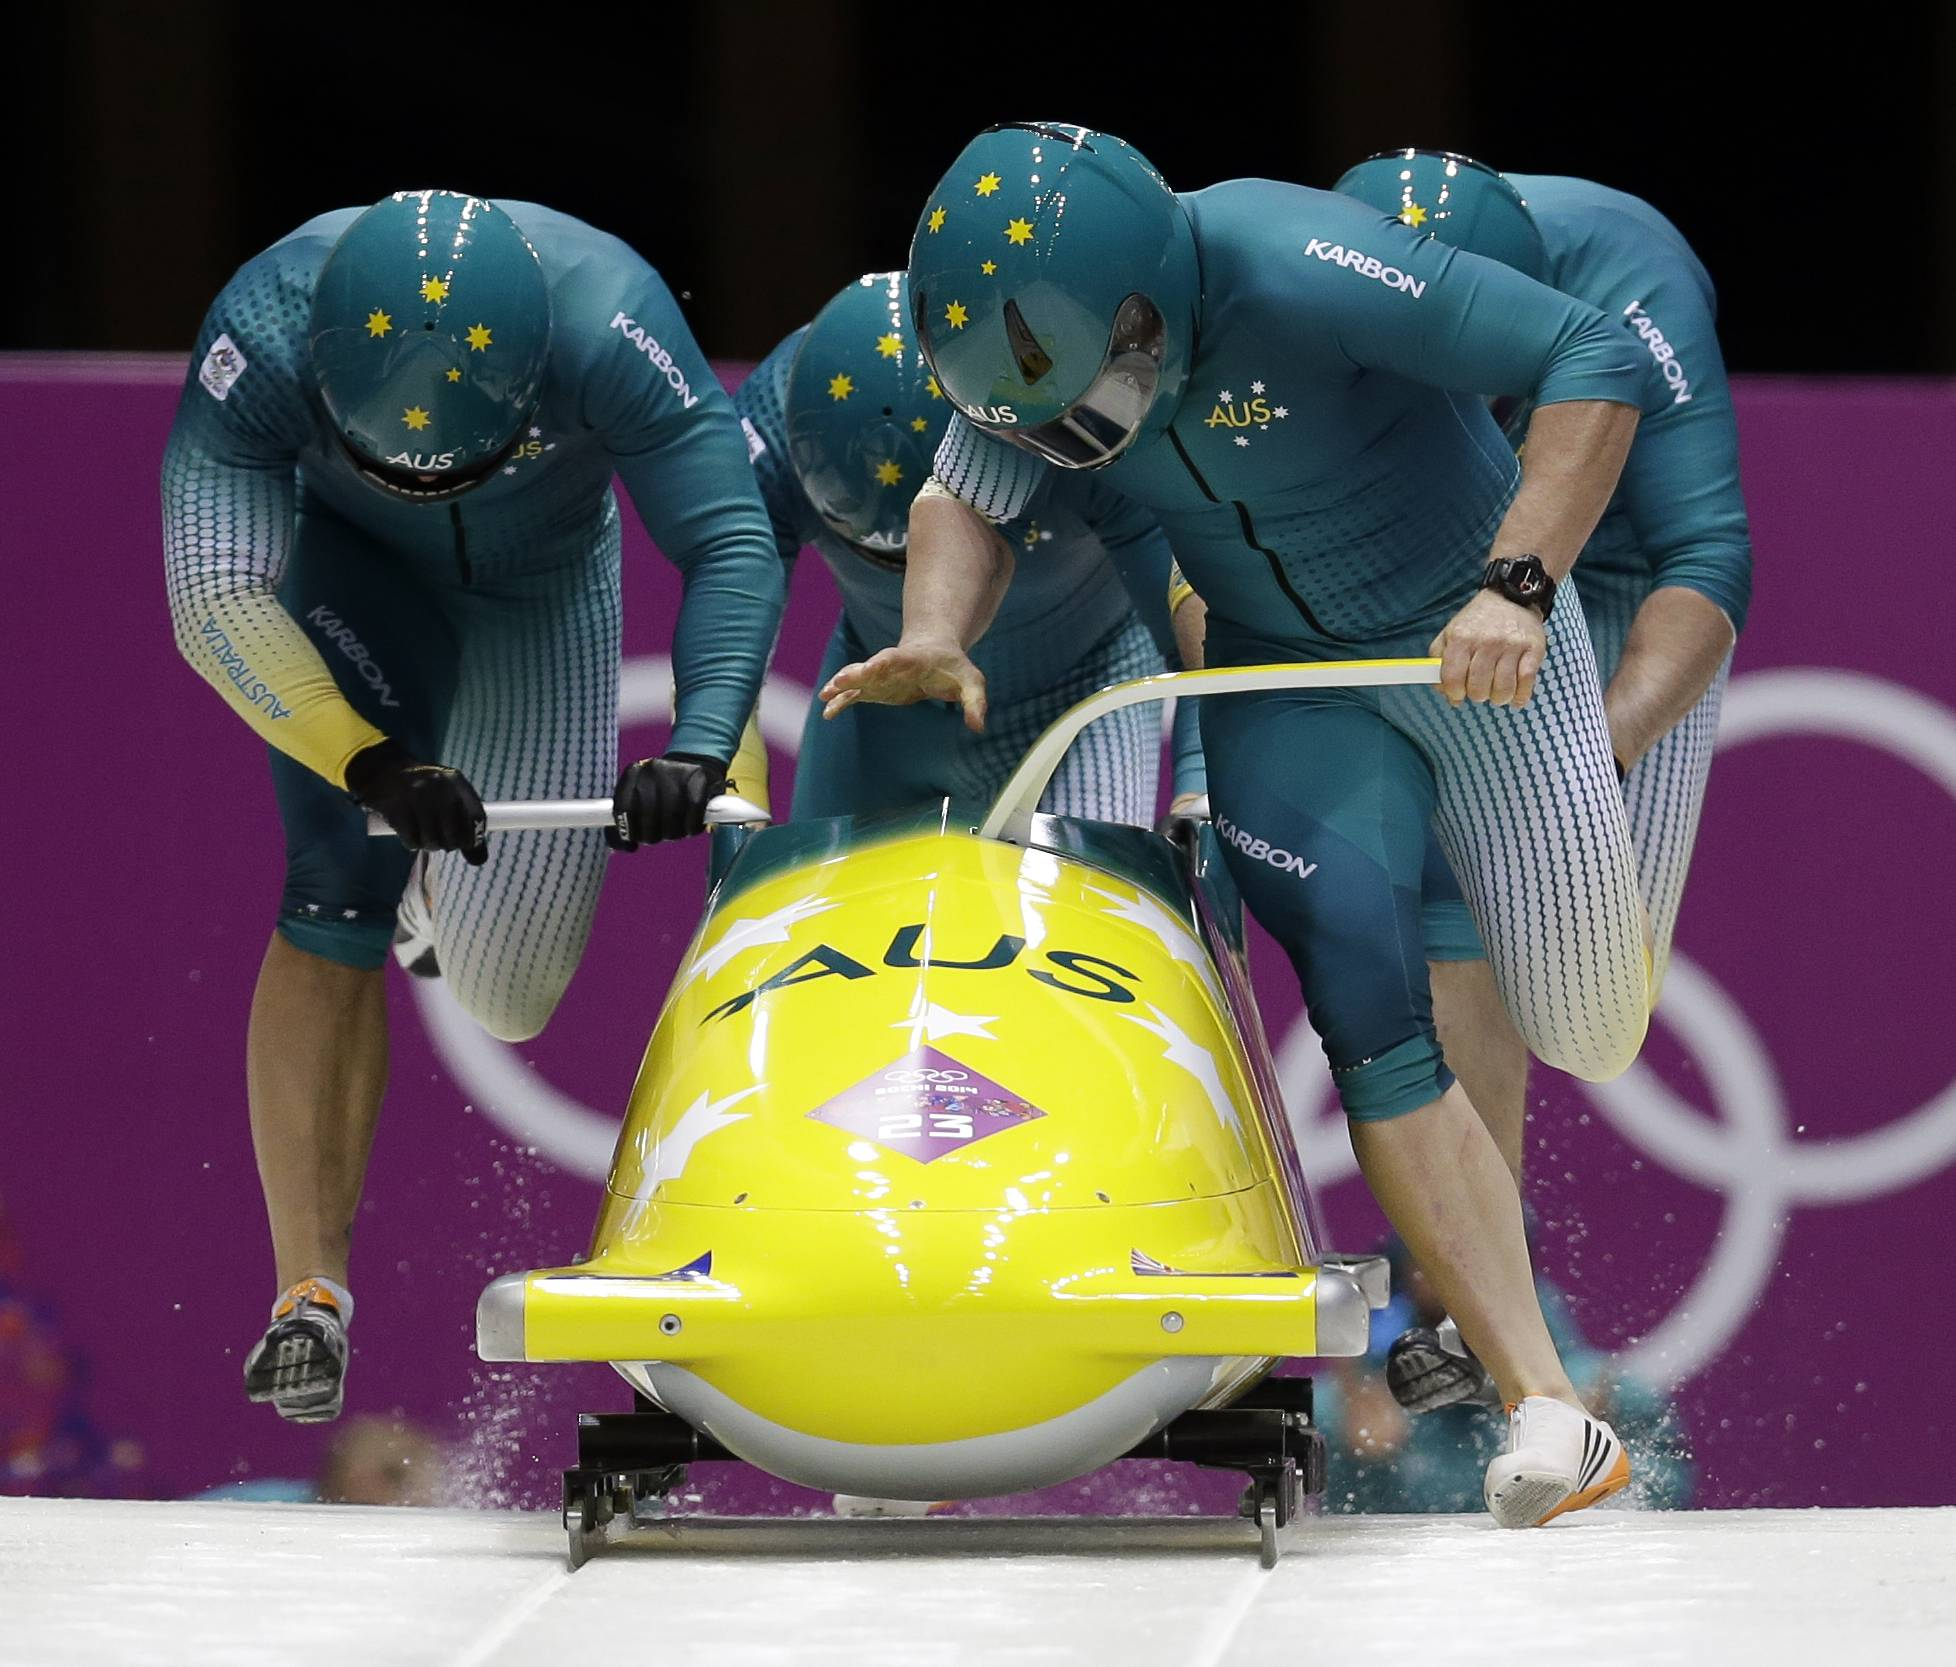 The team from Australia AUS-1, with Heath Spence, Gareth Nichols, Duncan Harvey, and Lucas Mata, start their first run during the men's four-man bobsled competition at the 2014 Winter Olympics, Saturday, Feb. 22, 2014, in Krasnaya Polyana, Russia.